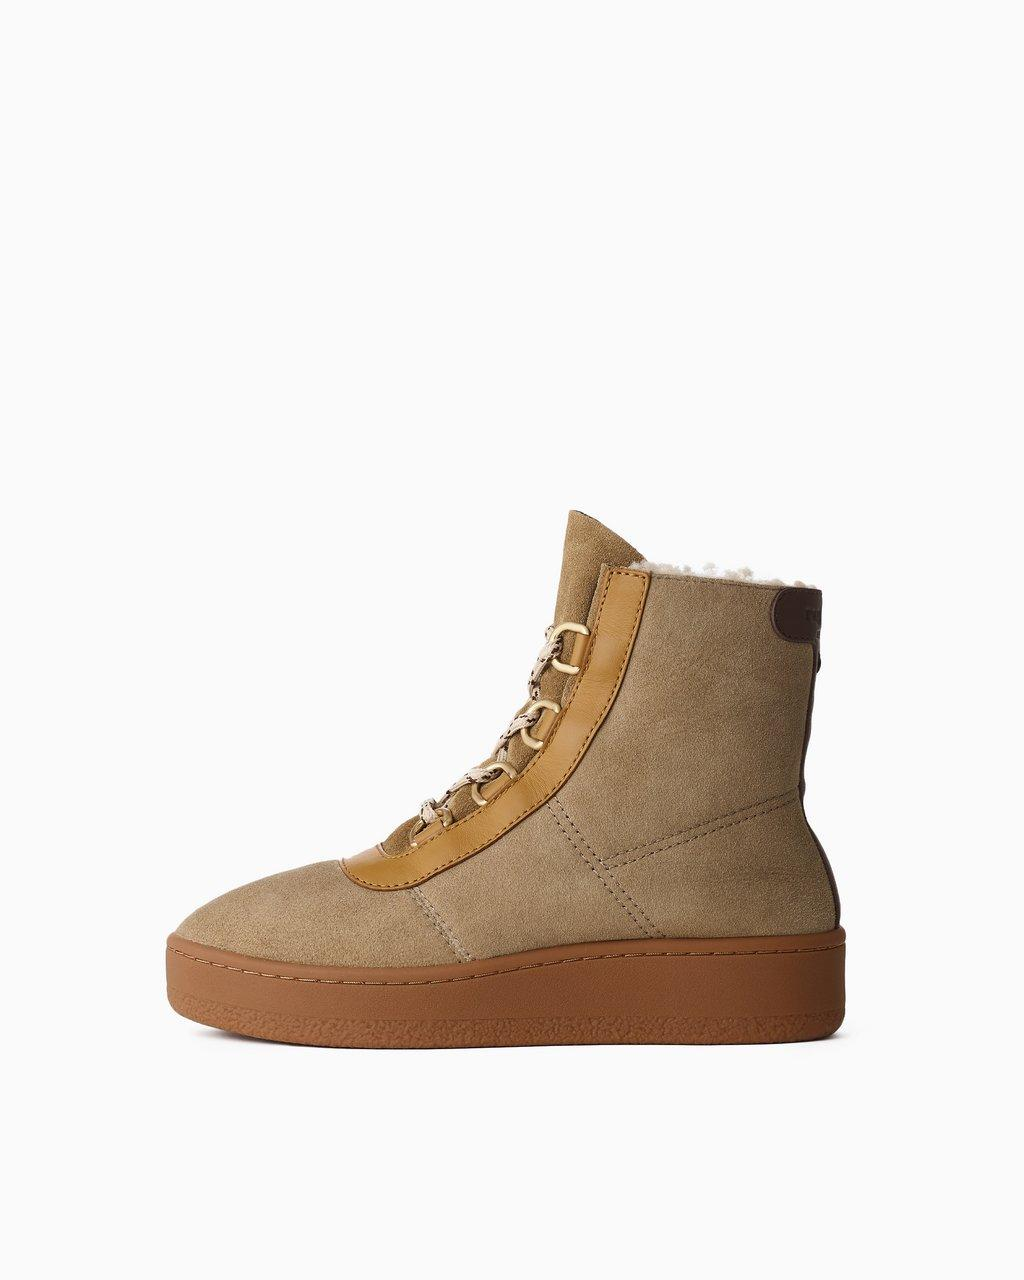 Oslo Lace Up Boot - Shearling